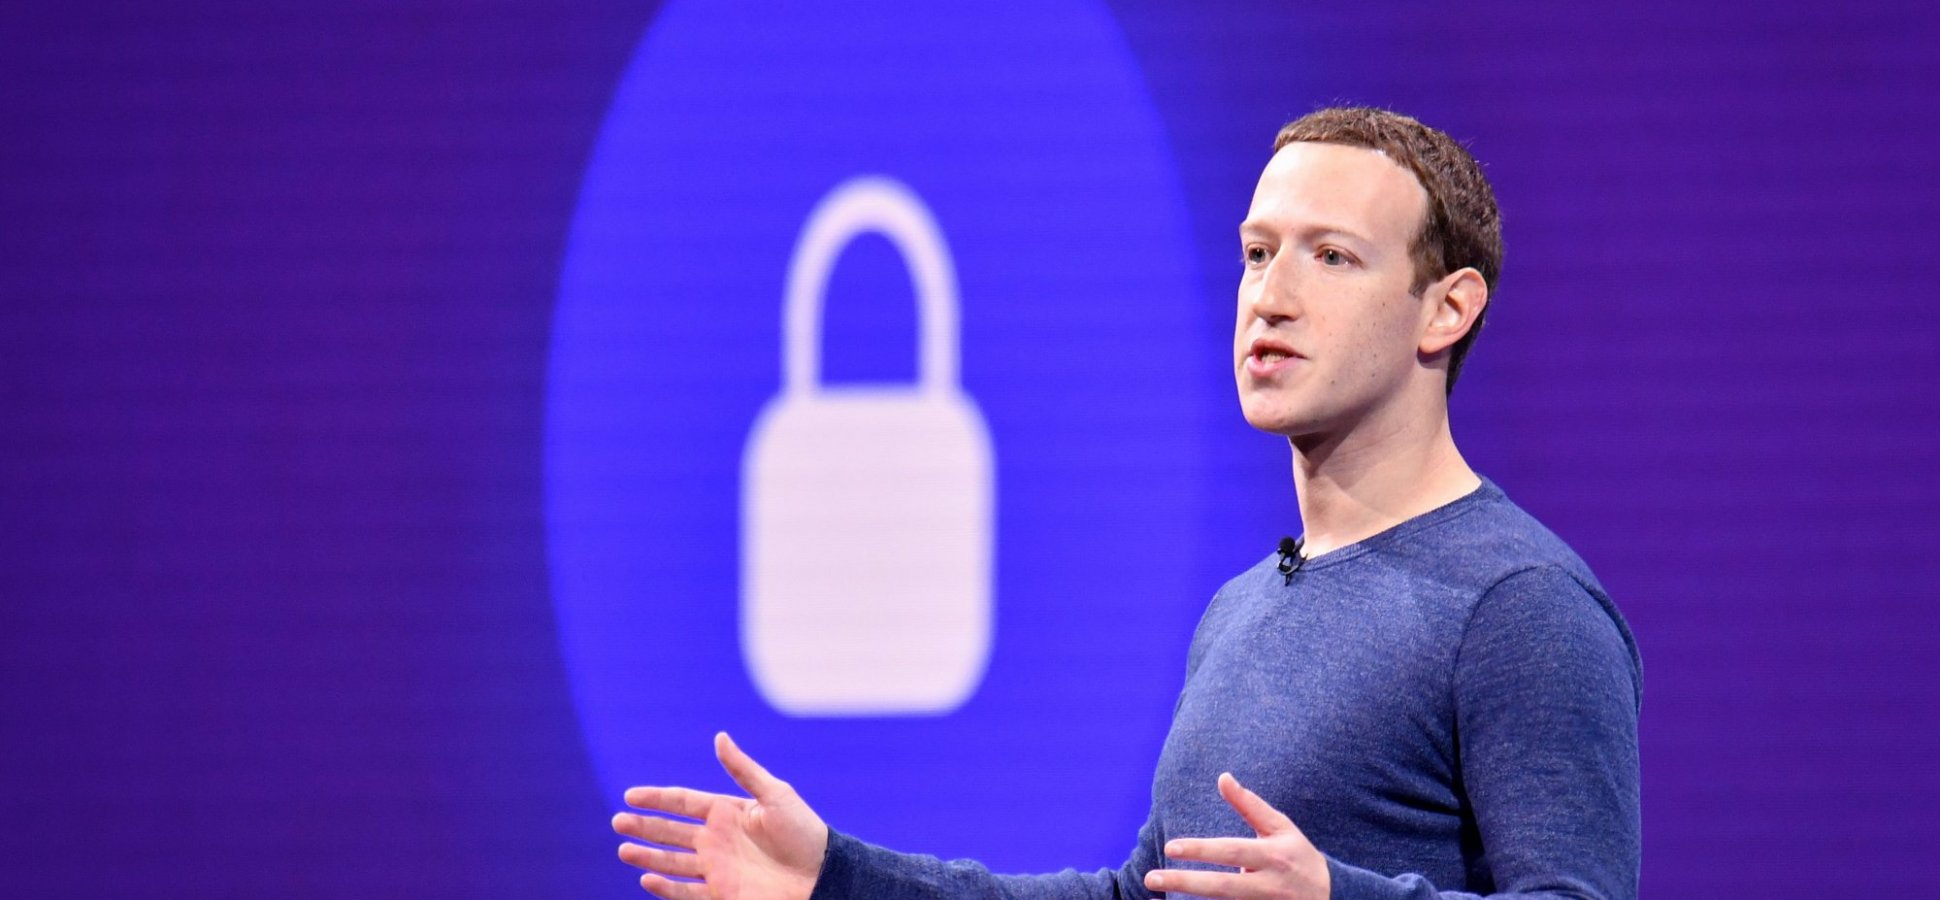 10 Crazy Truths About Facebook's Big New Announcement